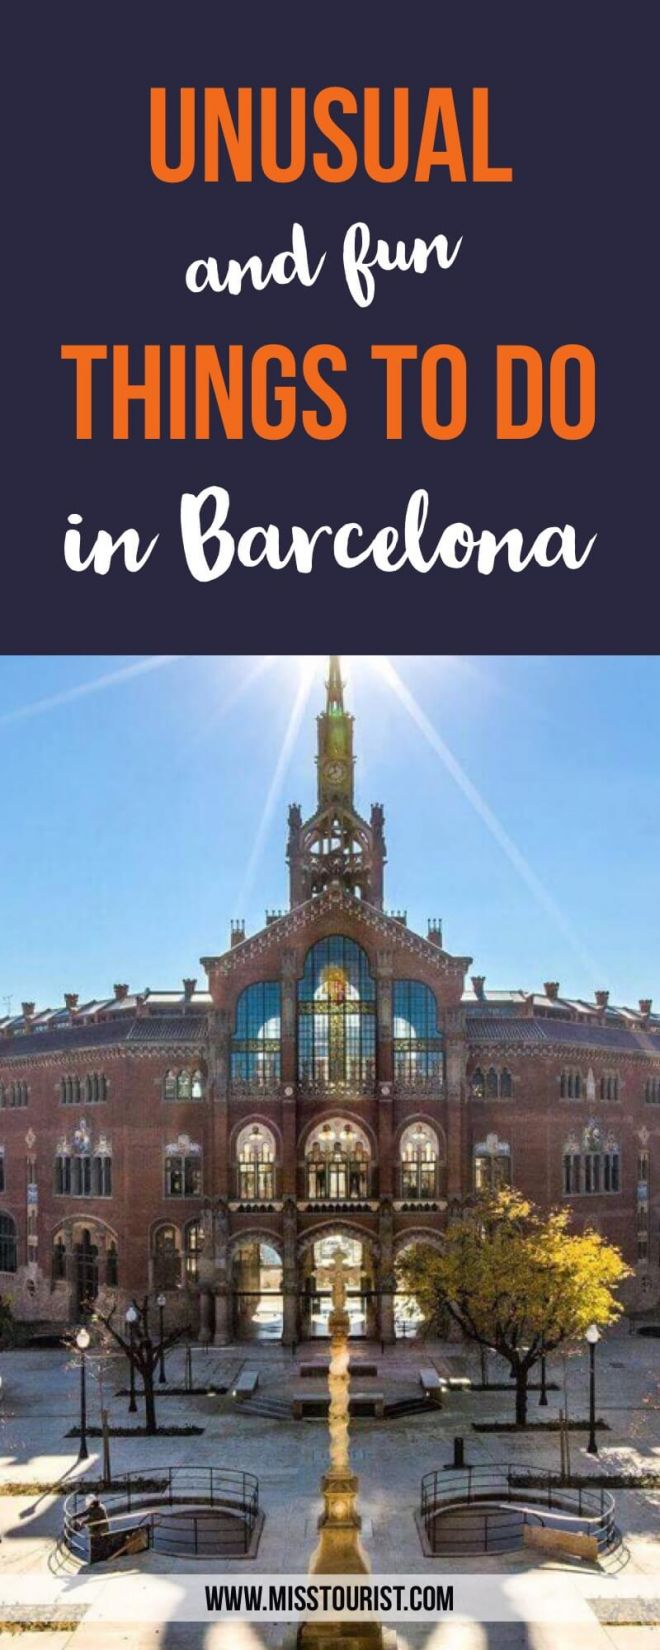 pin 1 Unusual and Fun Things To Do in Barcelona Spain